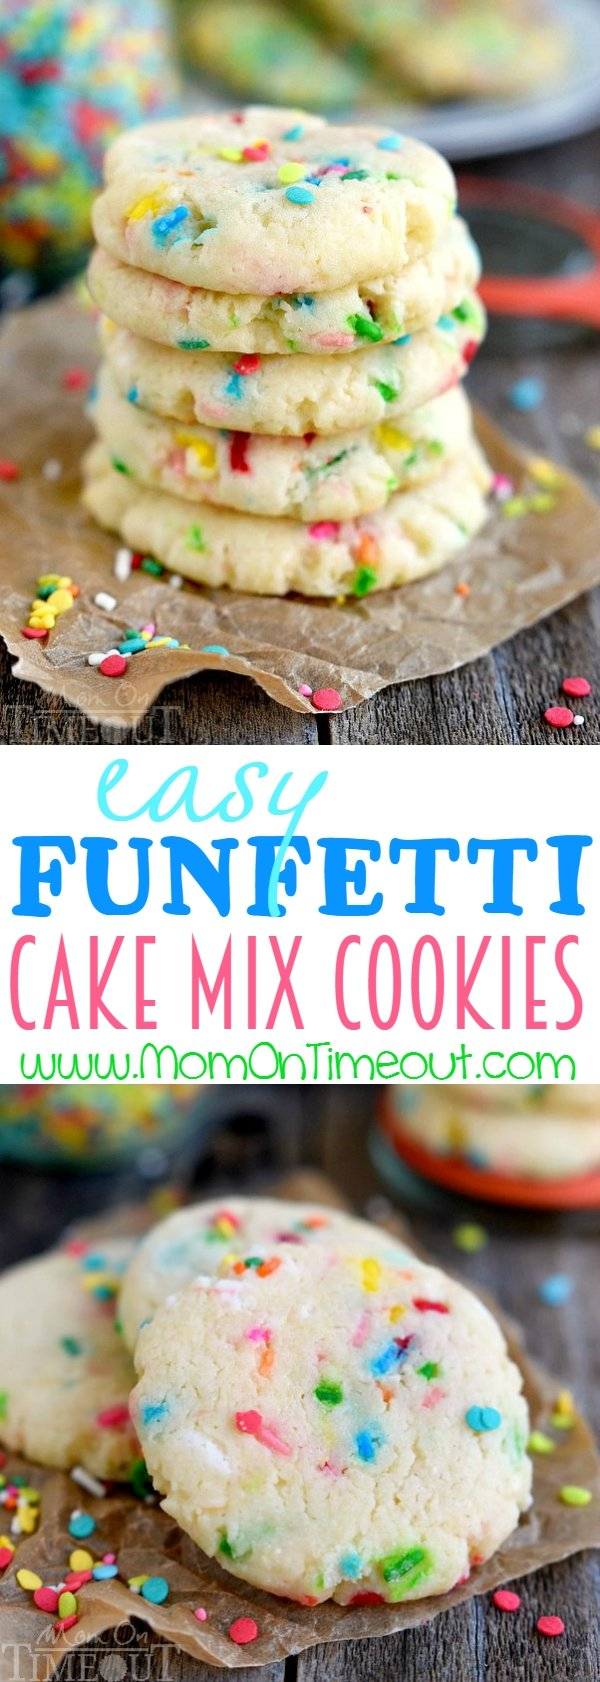 How To Make Funfetti Cookies Out Of Funfetti Cake Mix